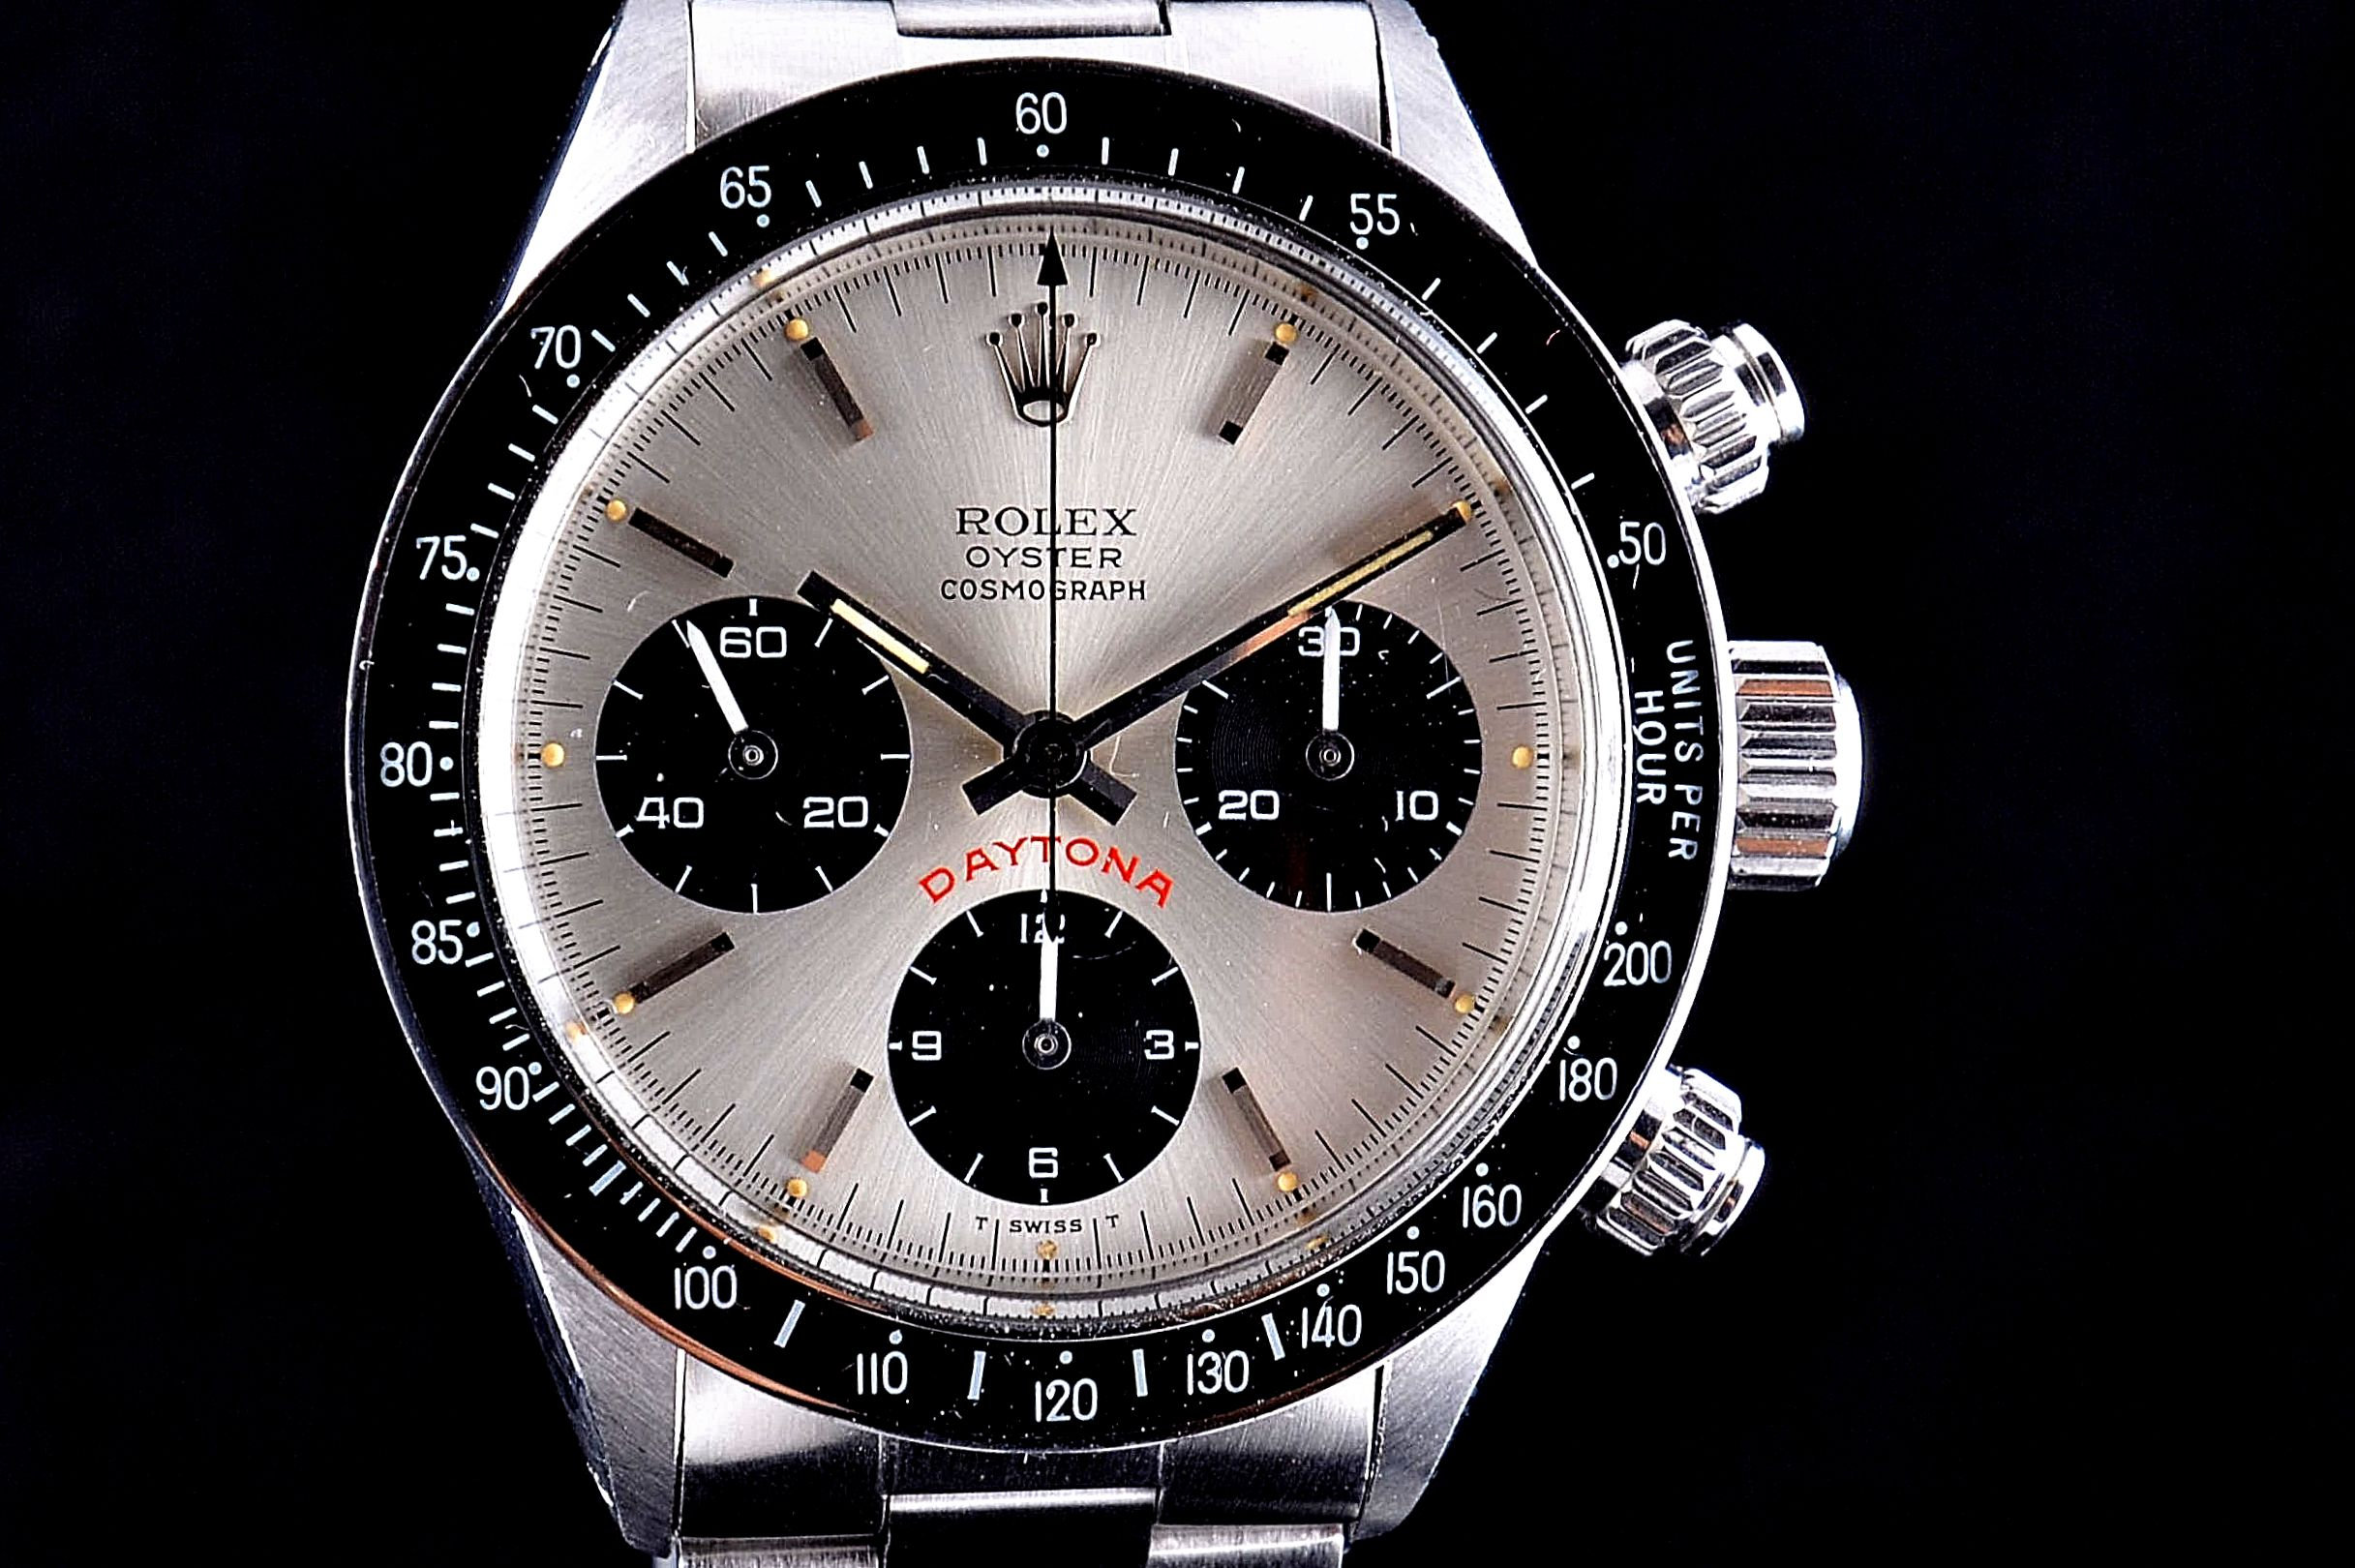 Rolex Daytona Vintage Replica Watches